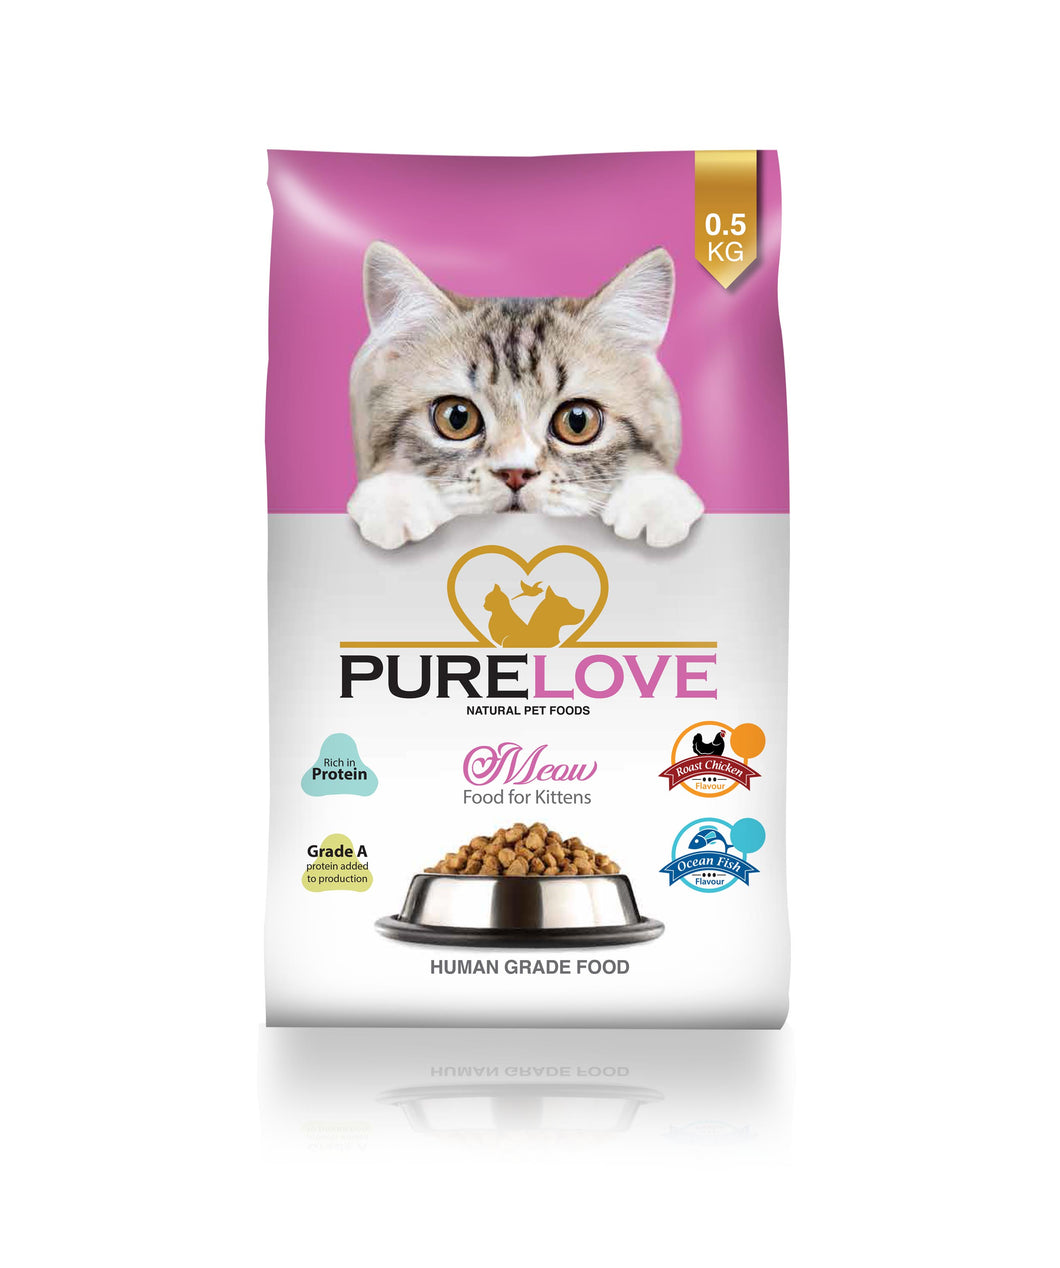 PureLove Meow Roast Chicken for Kitten 500G Human Grade Low in Gluten